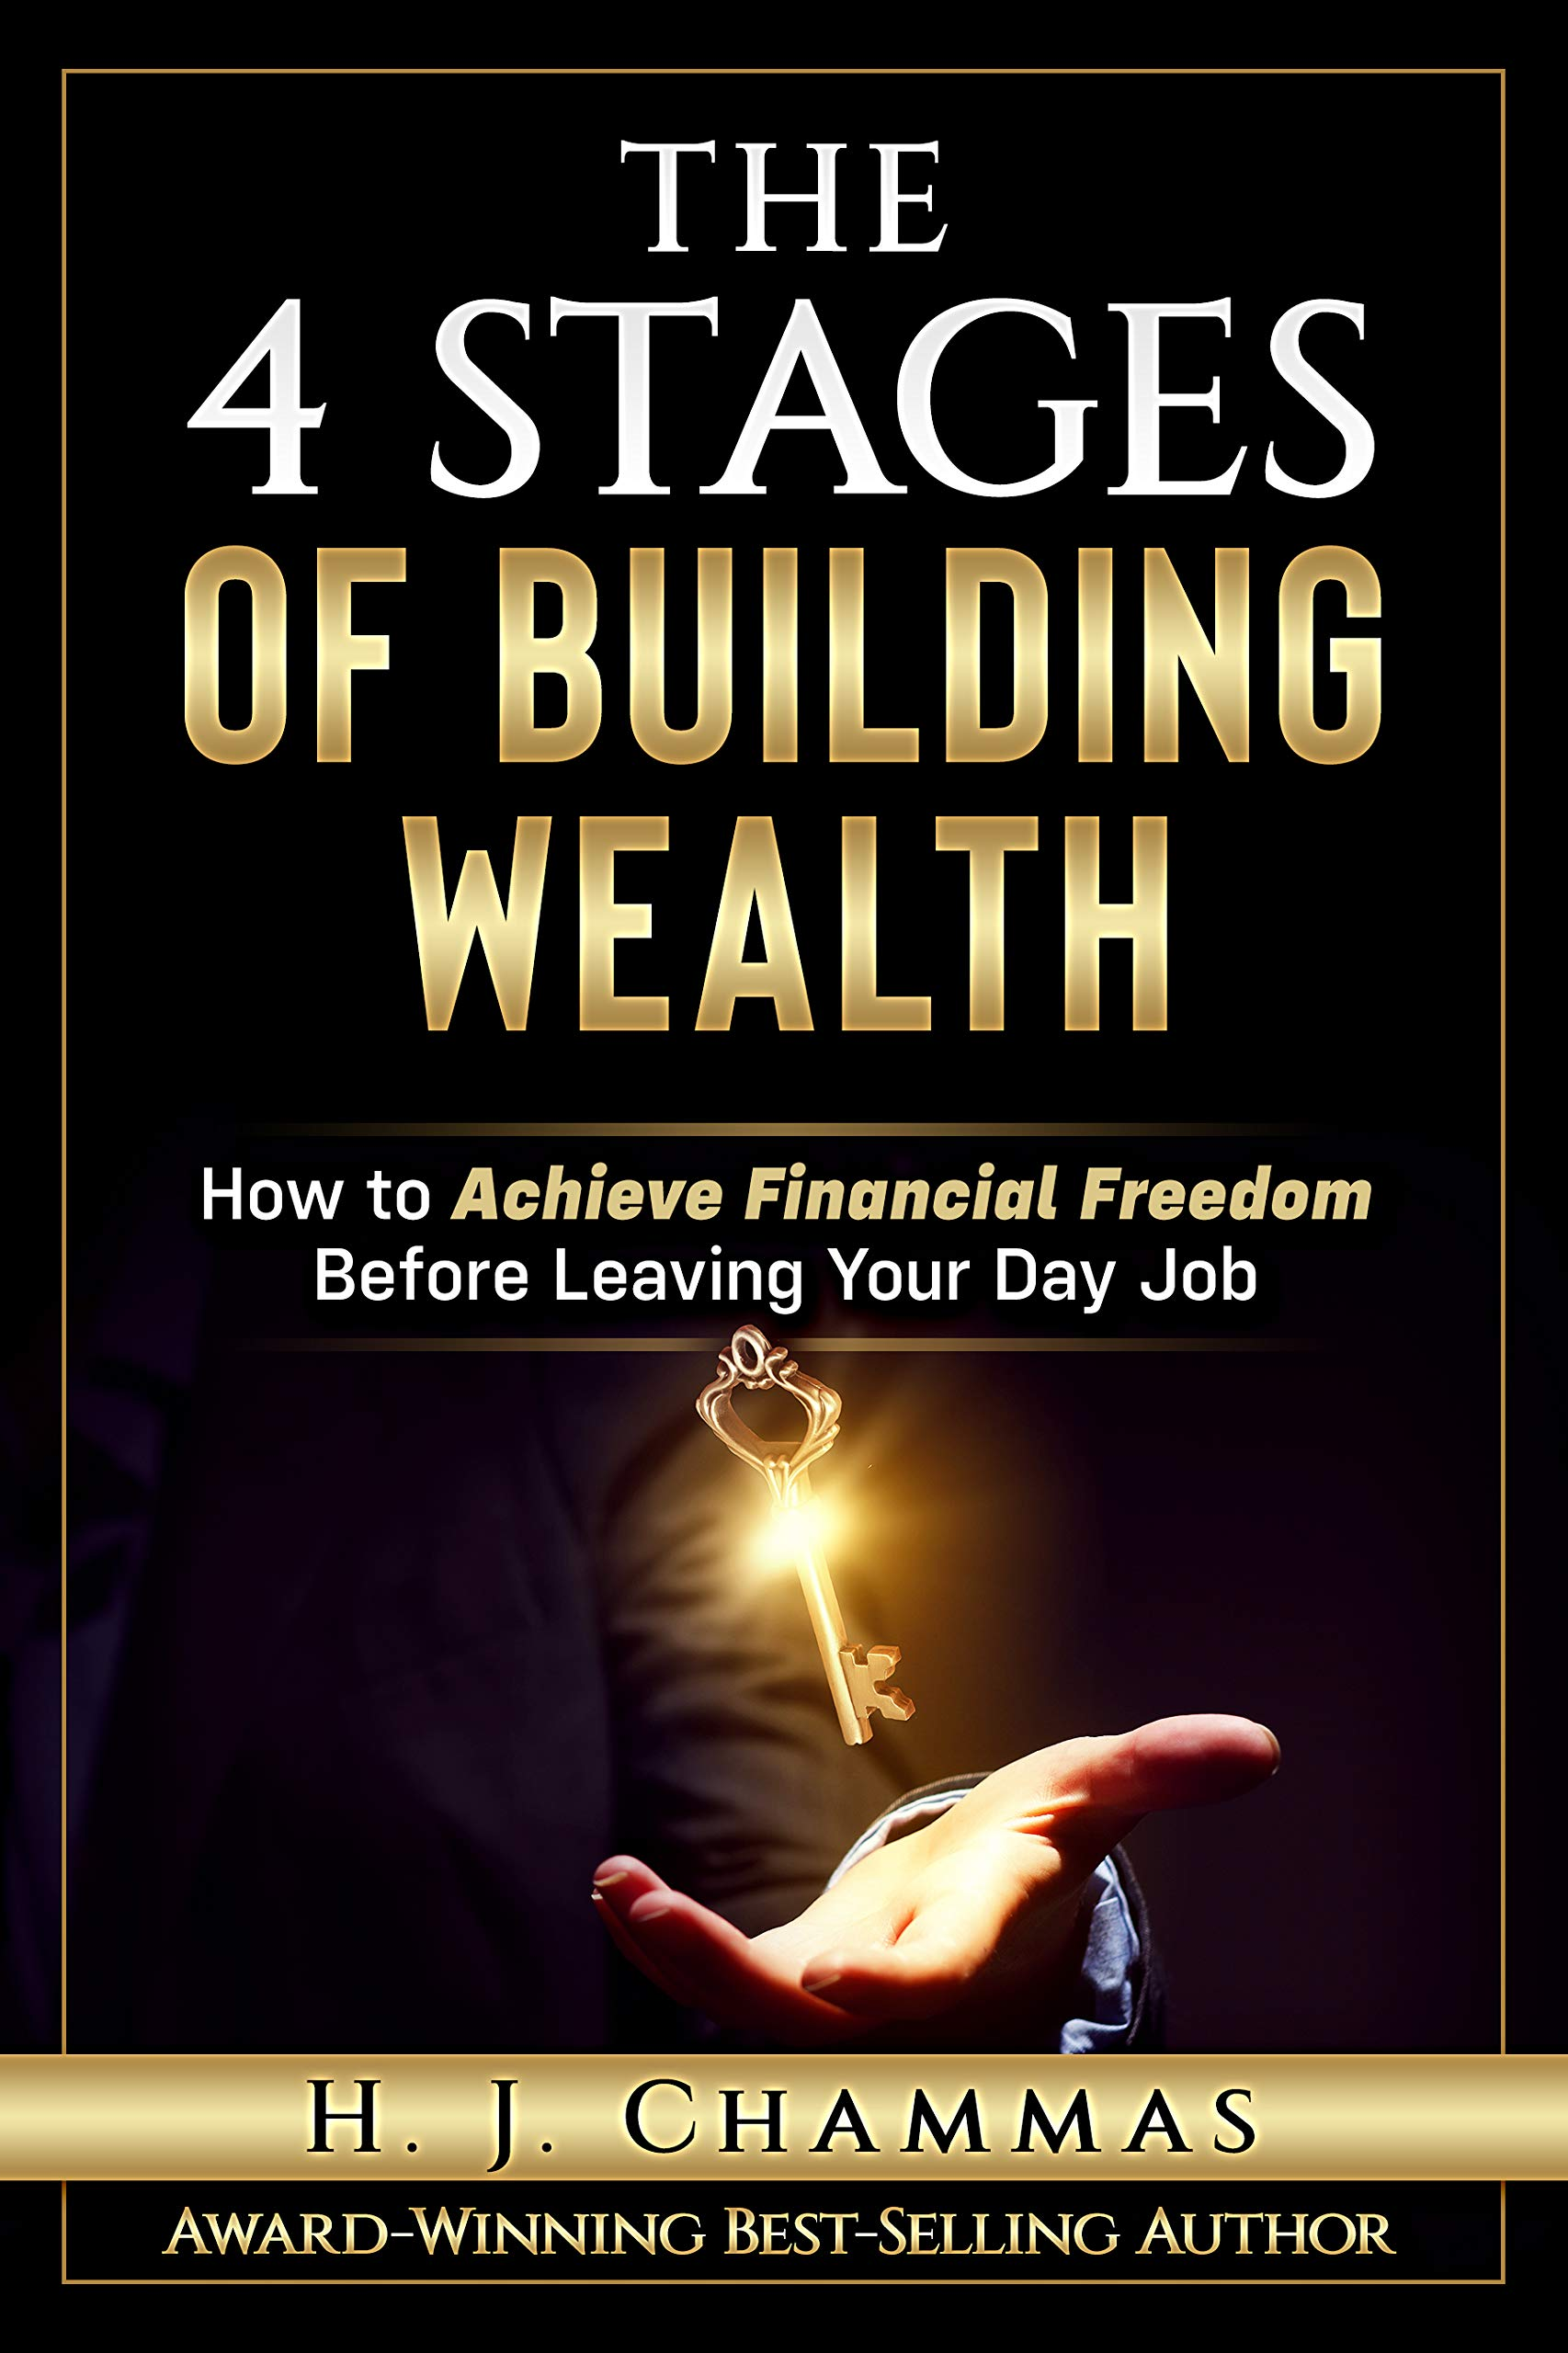 The 4 Stages Of Building Wealth: How to Achieve Financial Freedom Before Leaving Your Day Job